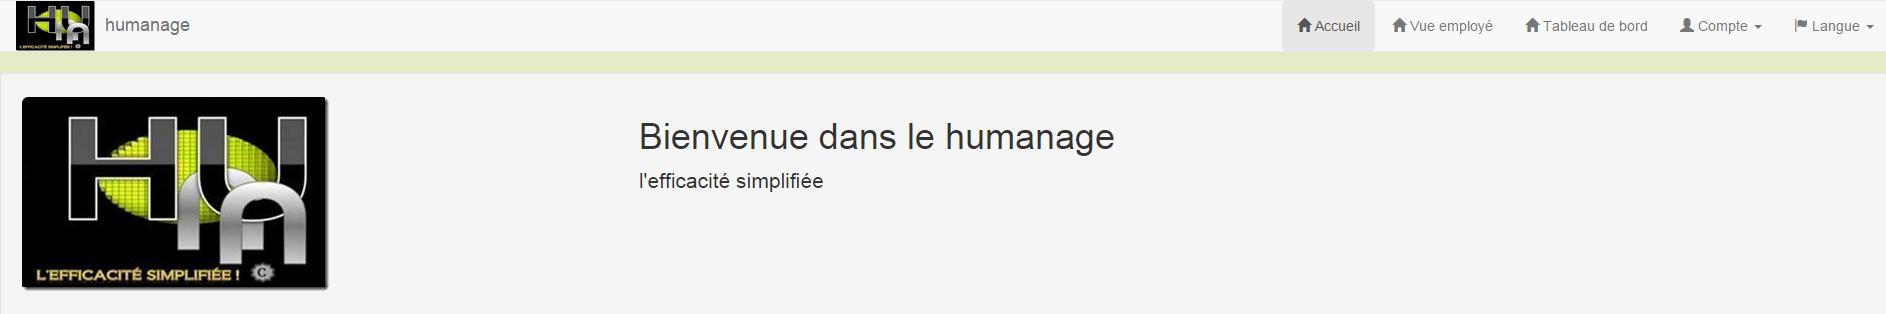 Écran_LOGON__Humanage